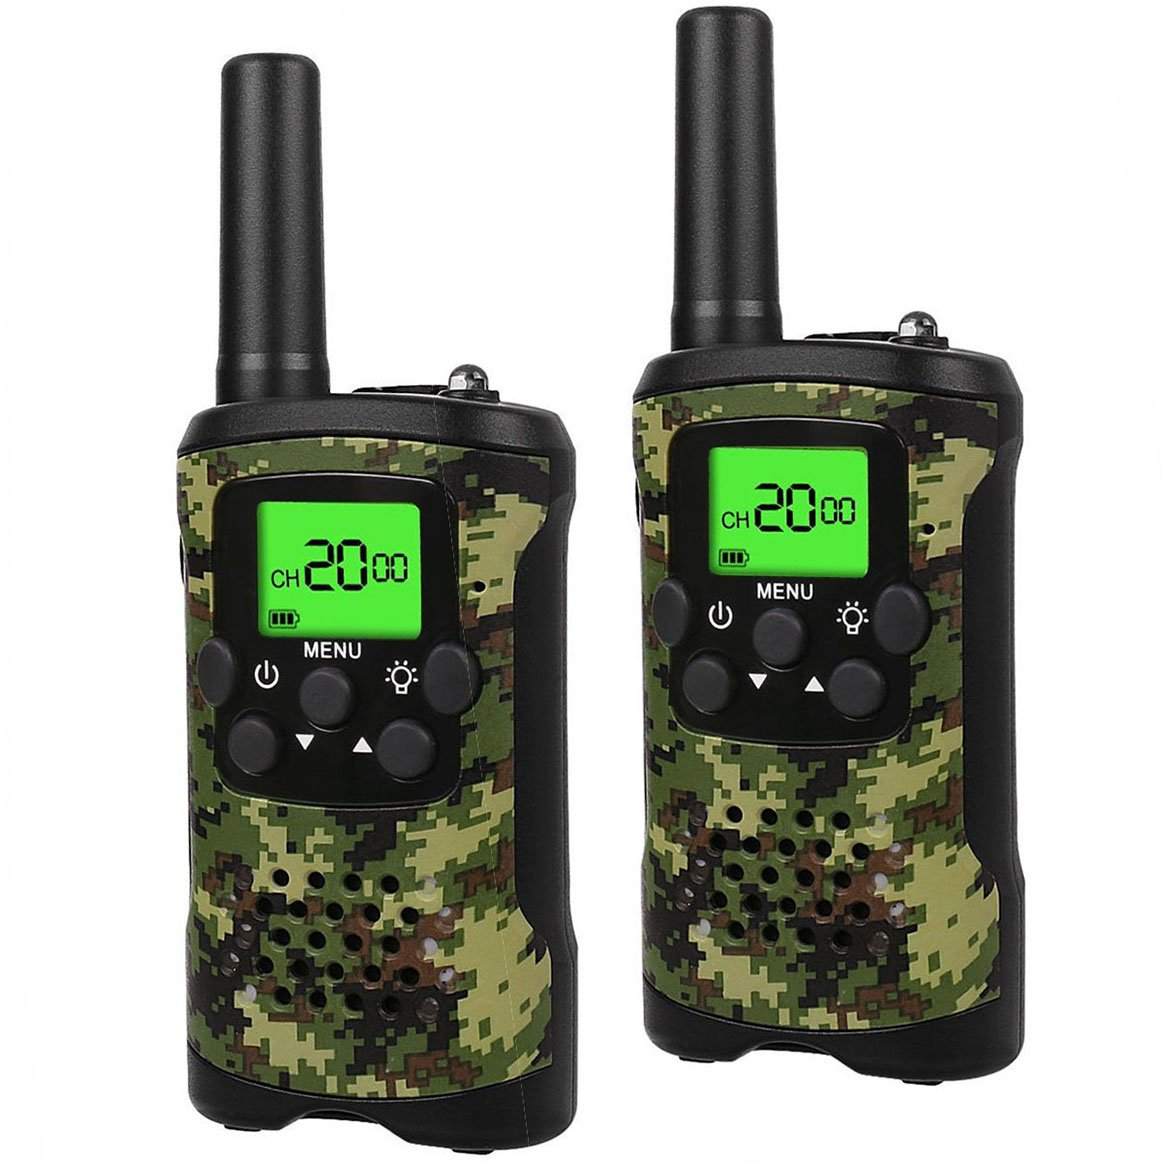 TOP Gift Outdoor Toys Walkie Talkies for Kids, Handheld Walkie Talkies for Kids Toys for 3-12 Year Old Boys Girls 2018 Christmas New for Kids Boys Girls 3-12 Green TGDJ01 by TOP Gift (Image #2)